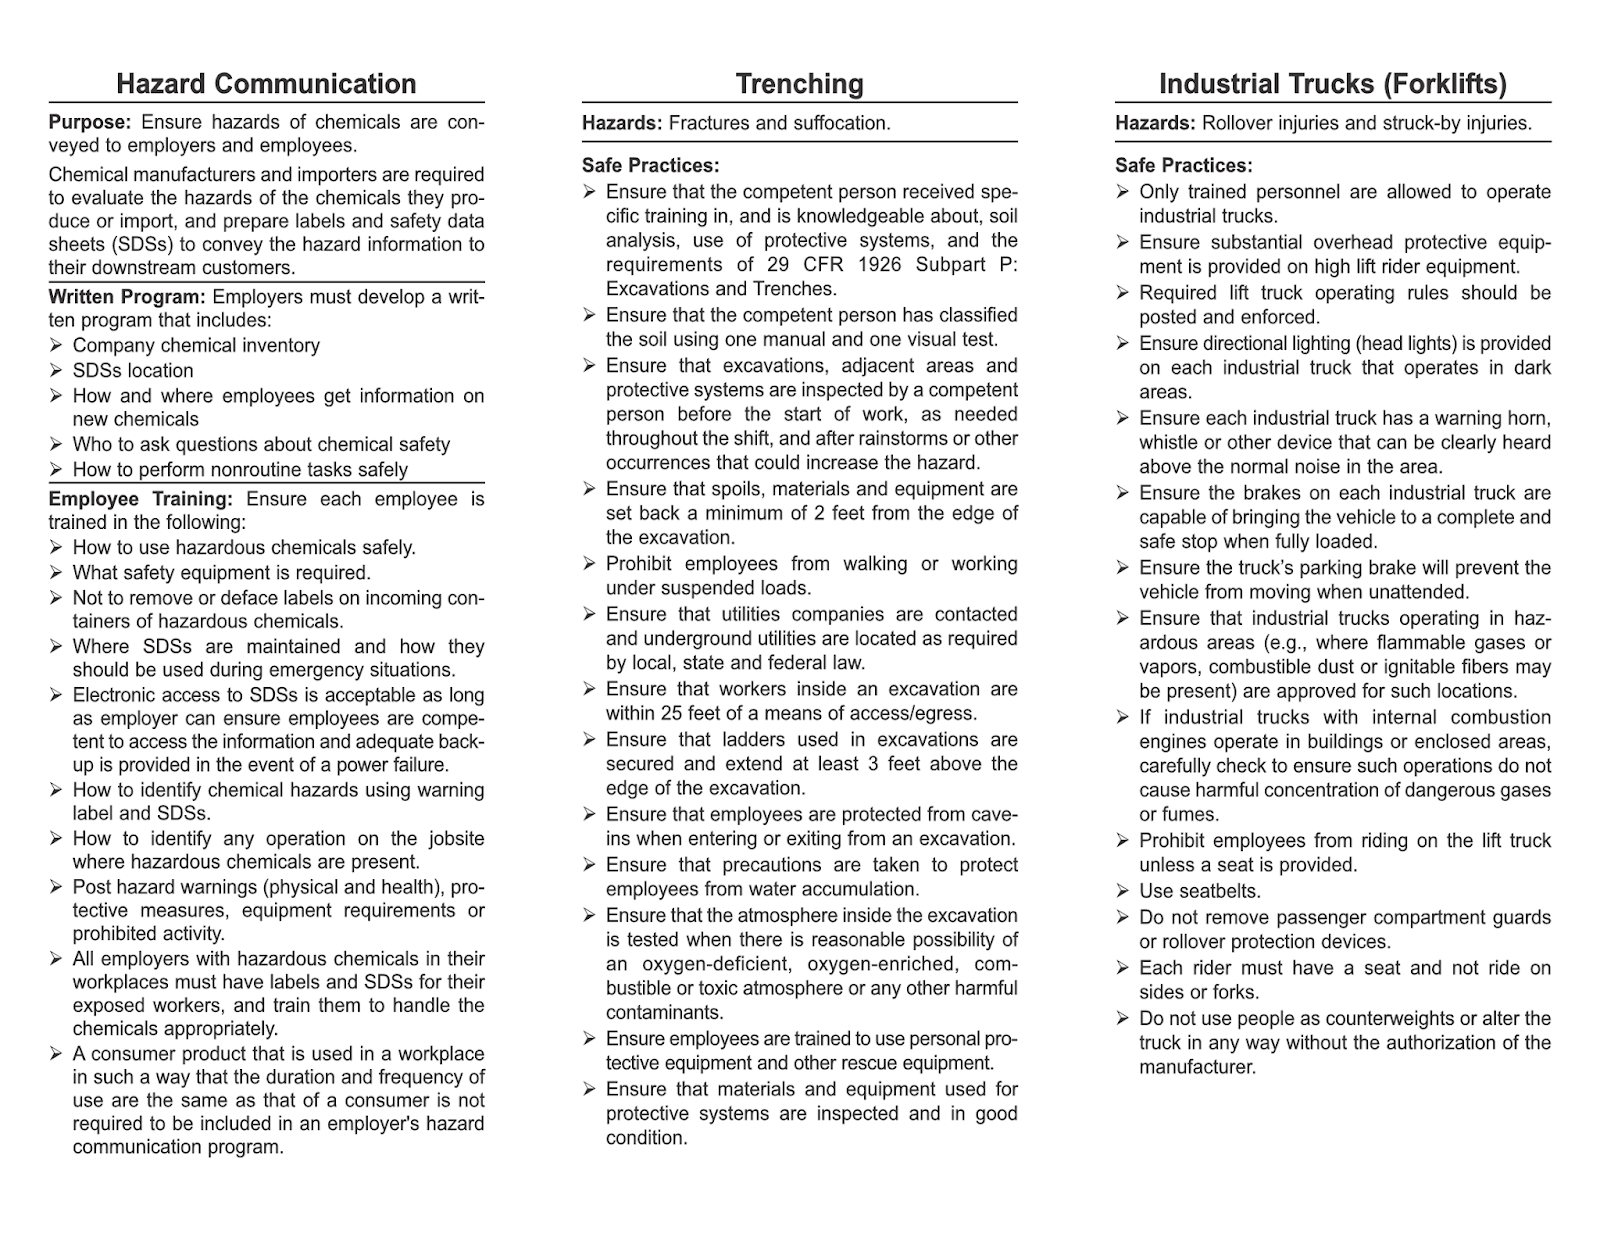 PDF]The Best 33 Safety Topics for Daily Toolbox Talk in PDF